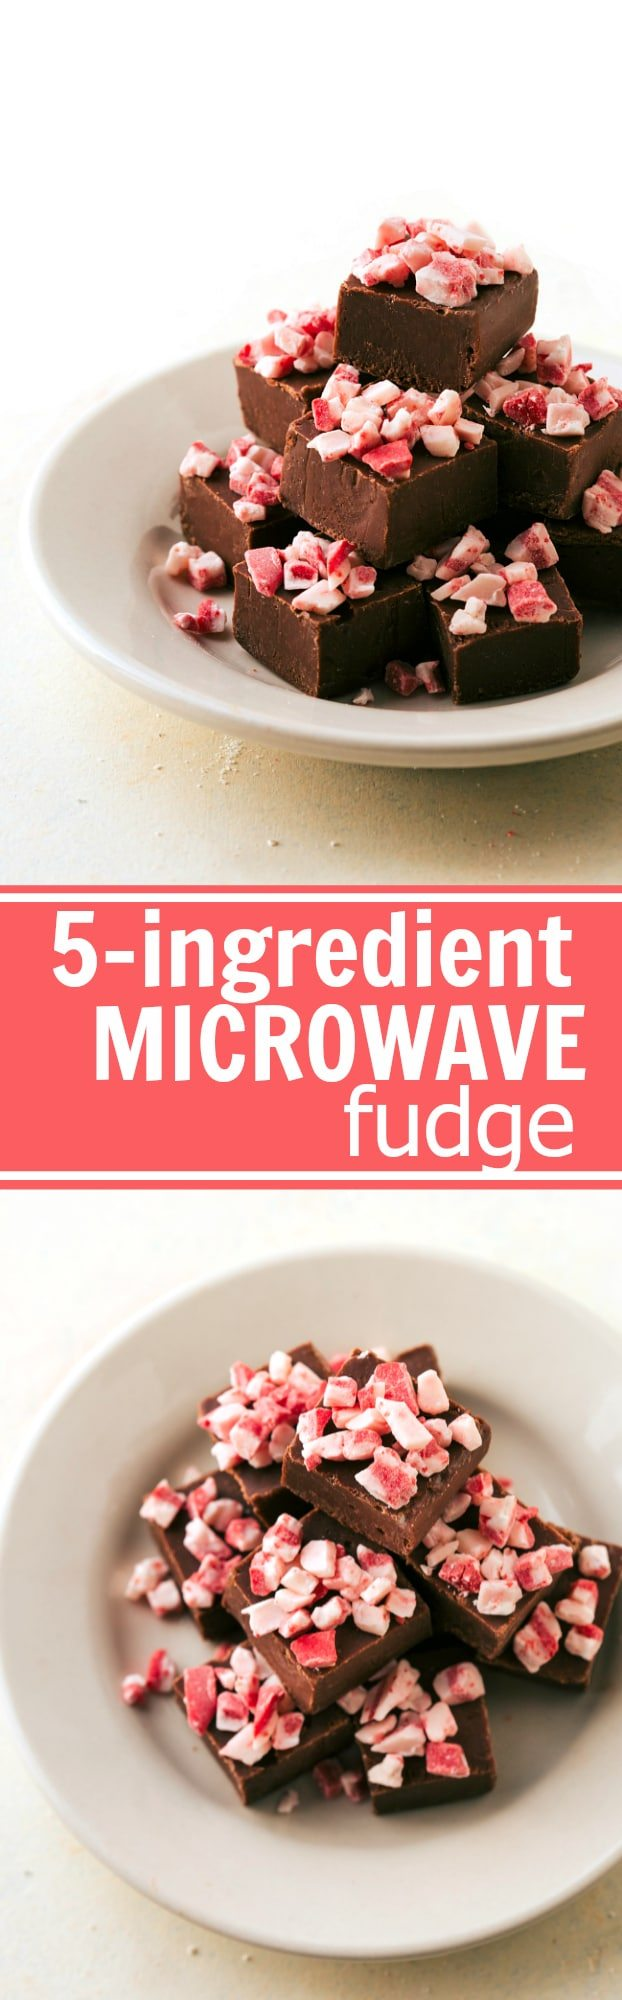 FOOLPROOF MICROWAVE FUDGE! Four different easy, quick, and fool-proof Christmas treats that the kids can help with! Perfect for gift-giving and enjoying with the family. Peppermint bark cookies, toffee cashew clusters, microwave fudge, and rudolph bites! Recipes via chelseasmessyapron.com